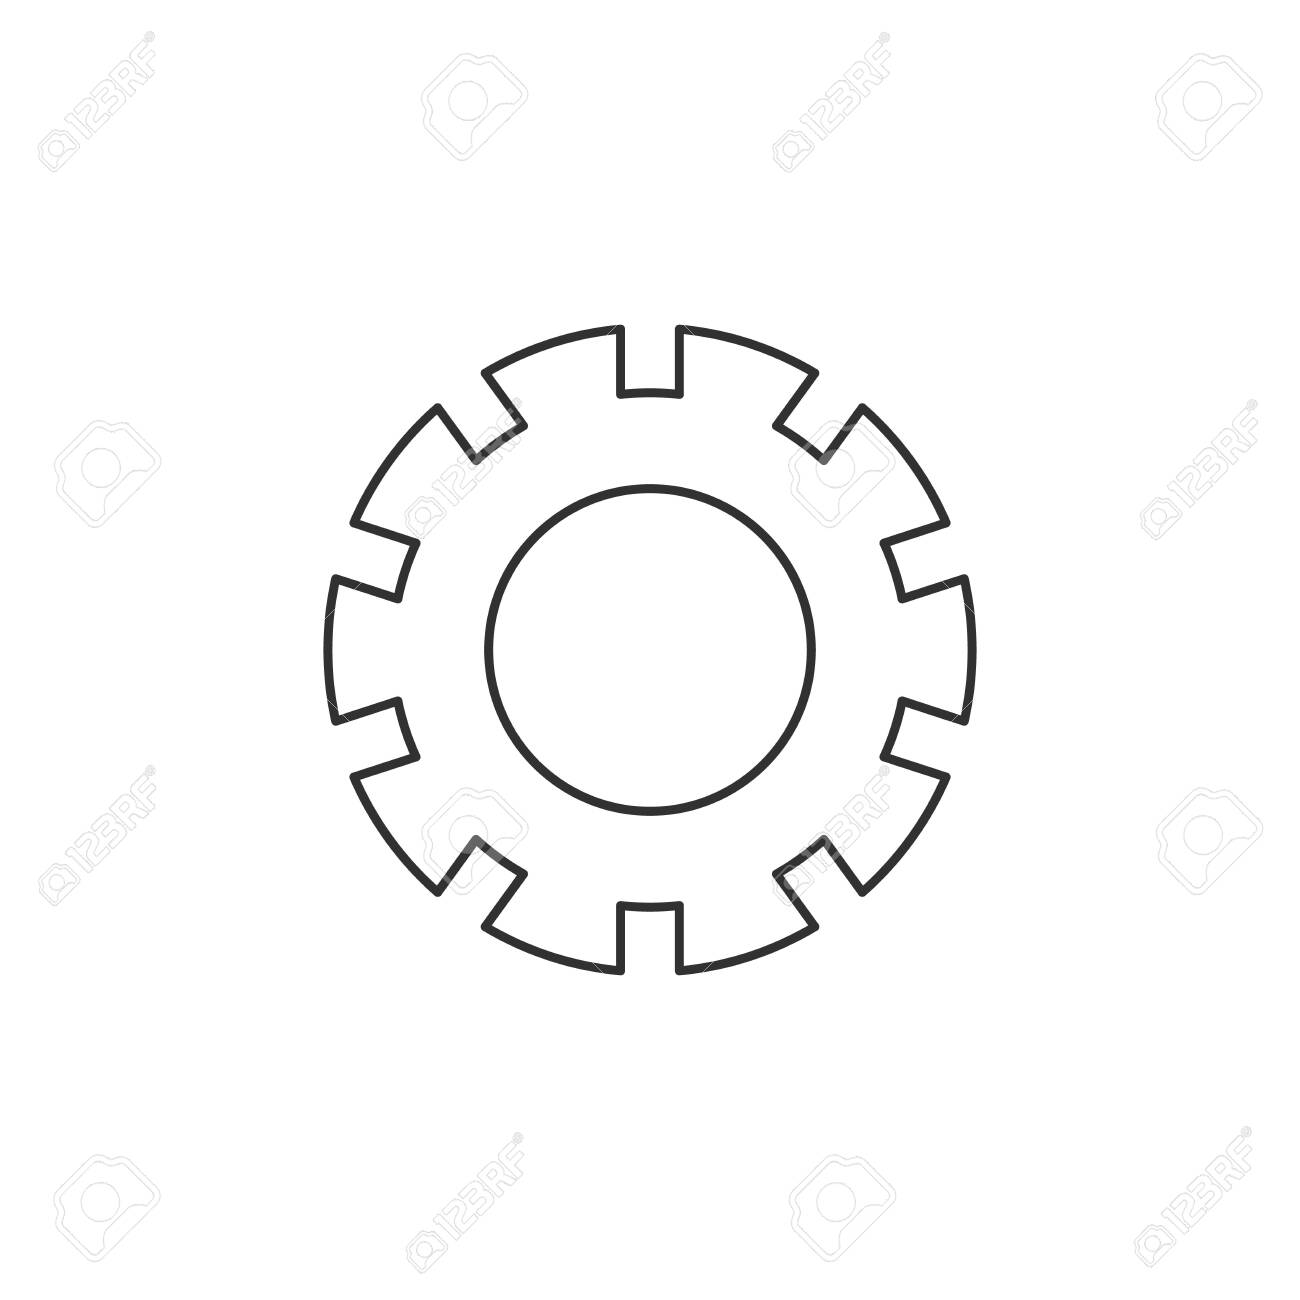 Settings icon wheel, cog, cogwheel icon  Vector illustration